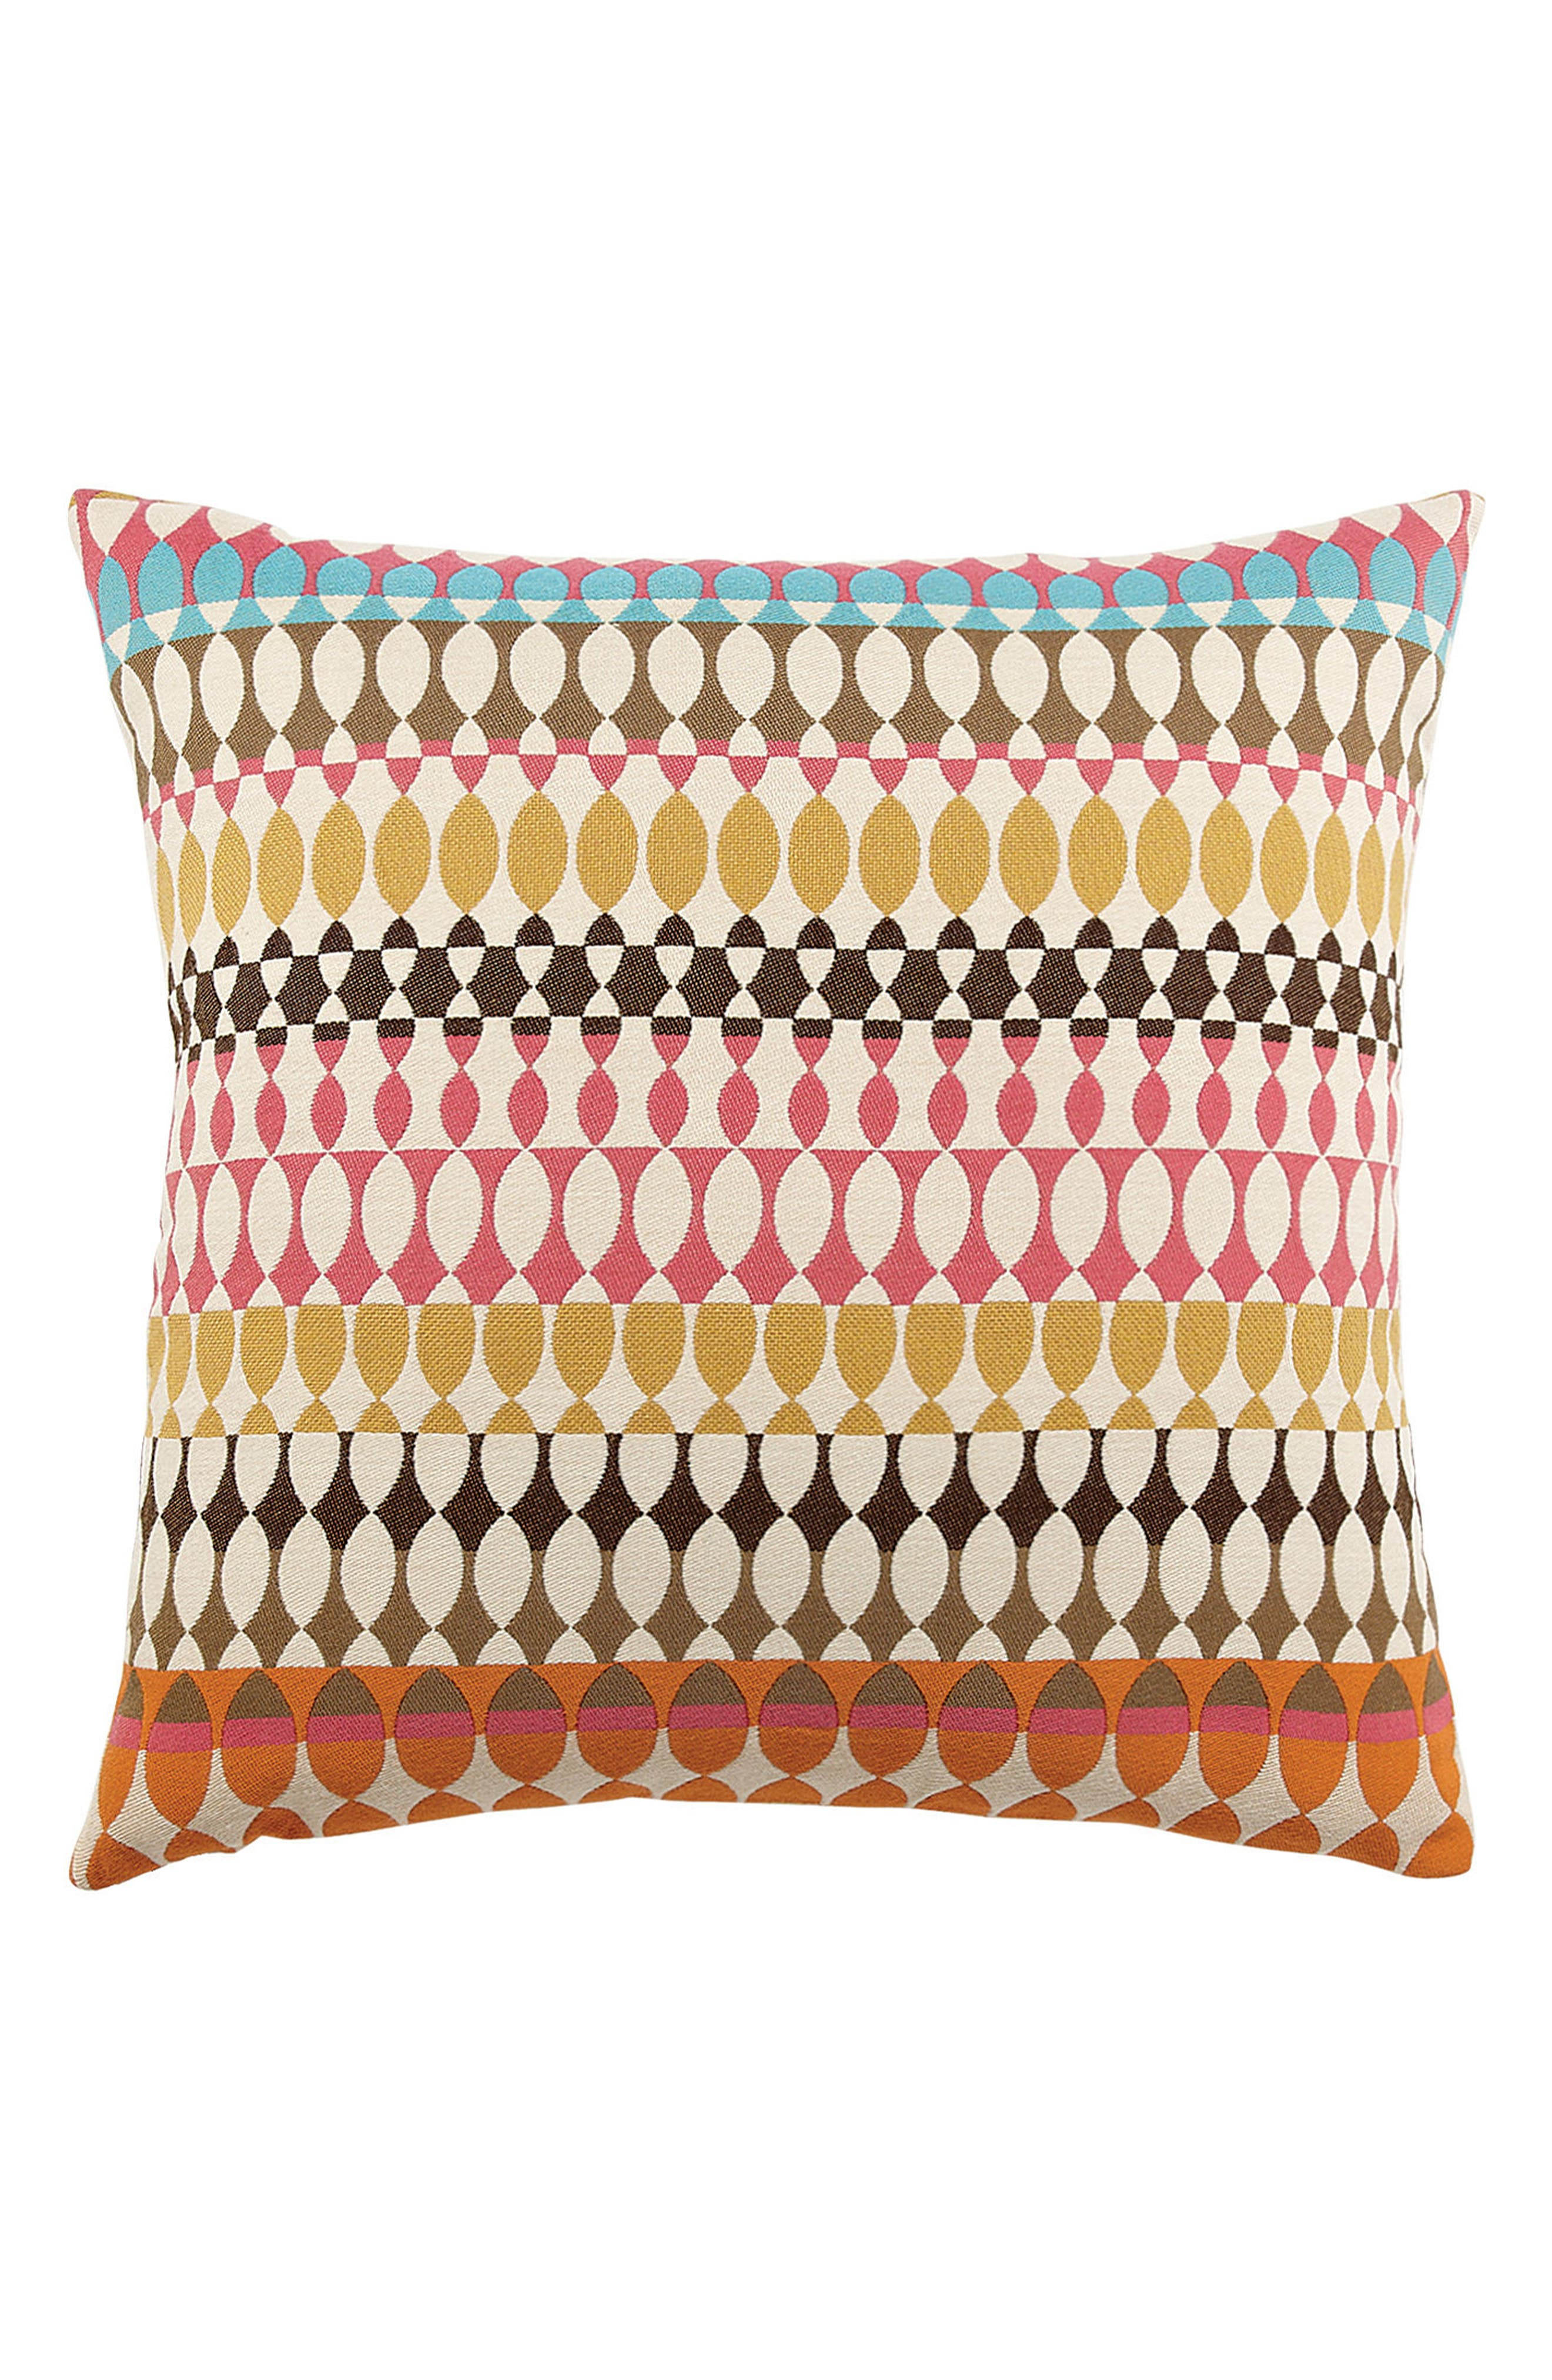 Modern Oval Candy Indoor/Outdoor Accent Pillow,                             Main thumbnail 1, color,                             650